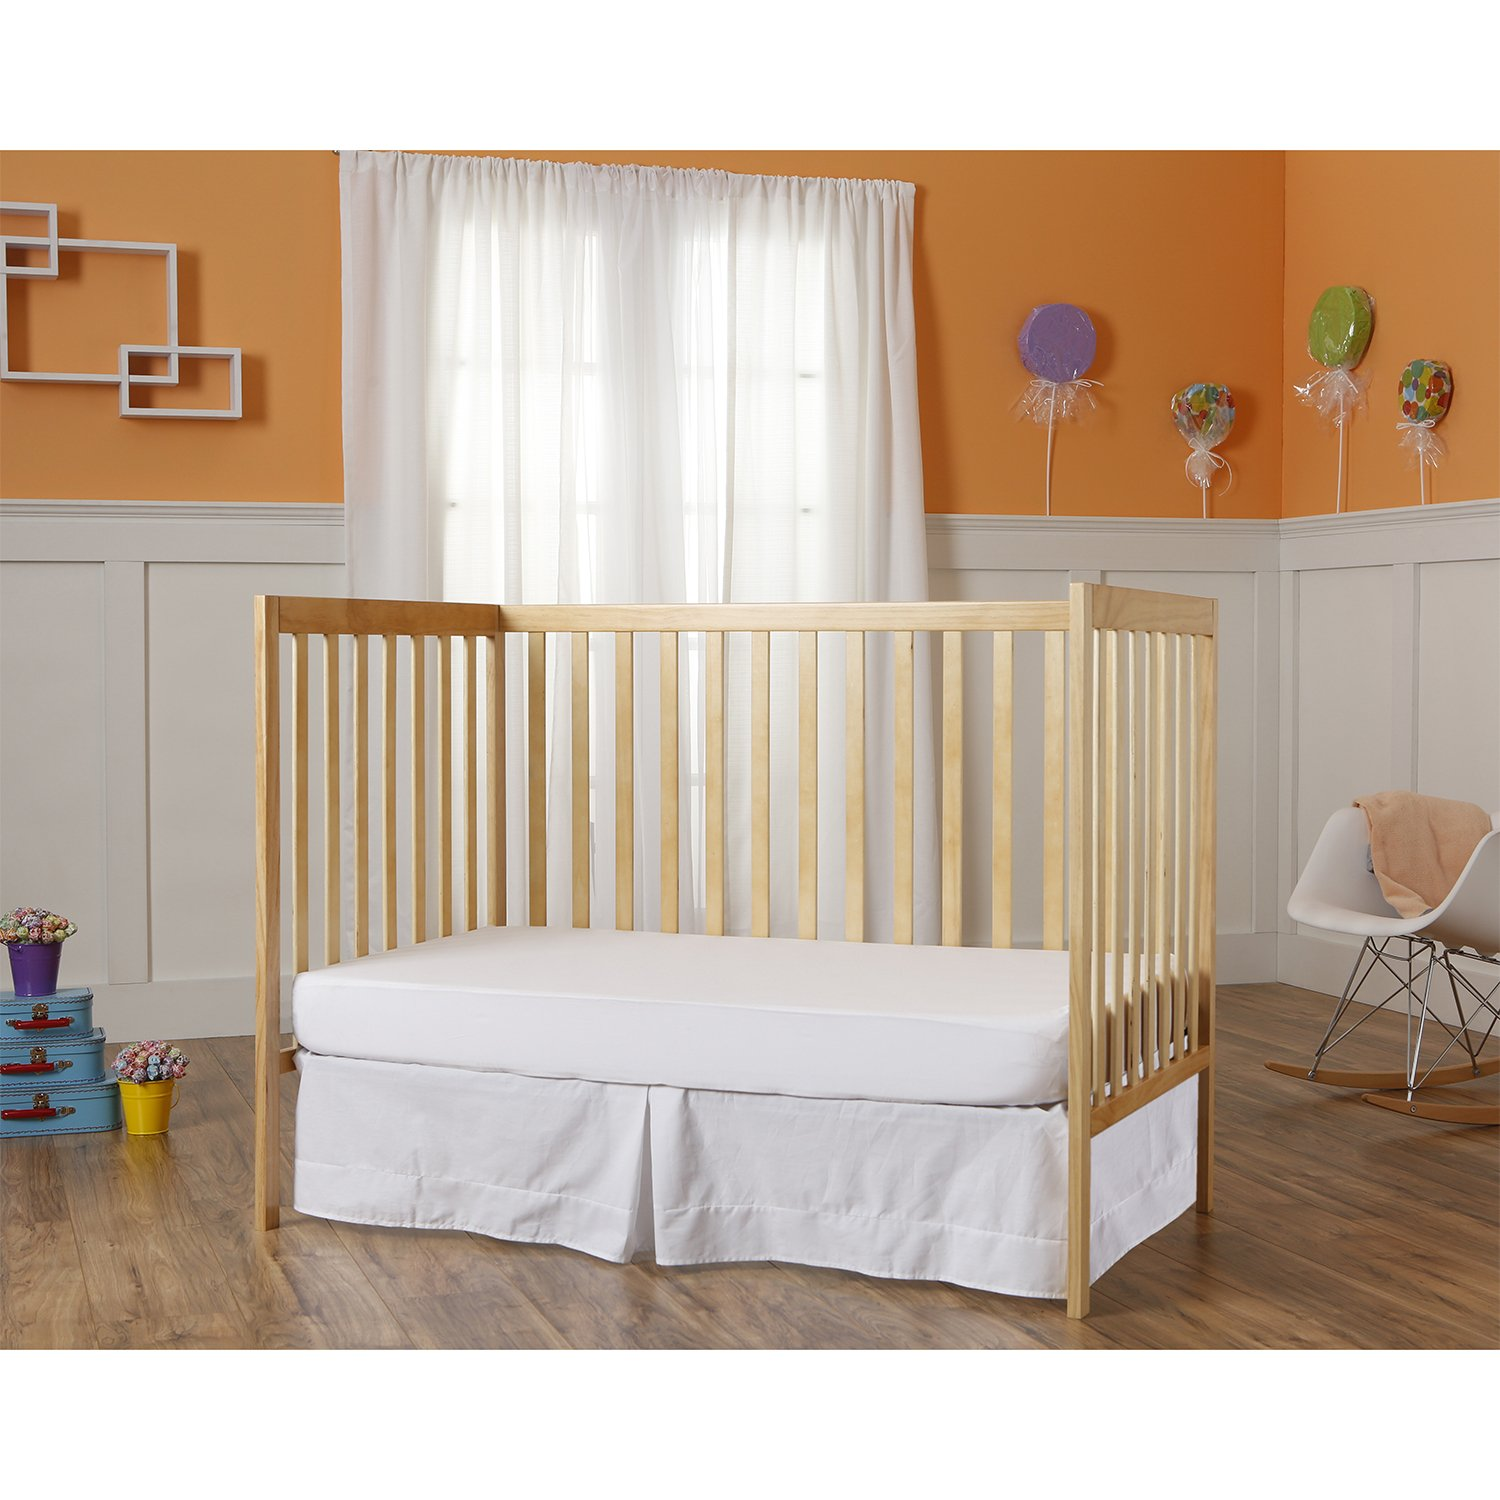 Dream On Me Synergy 5-in-1 Convertible, Crib, Natural by Dream On Me (Image #4)